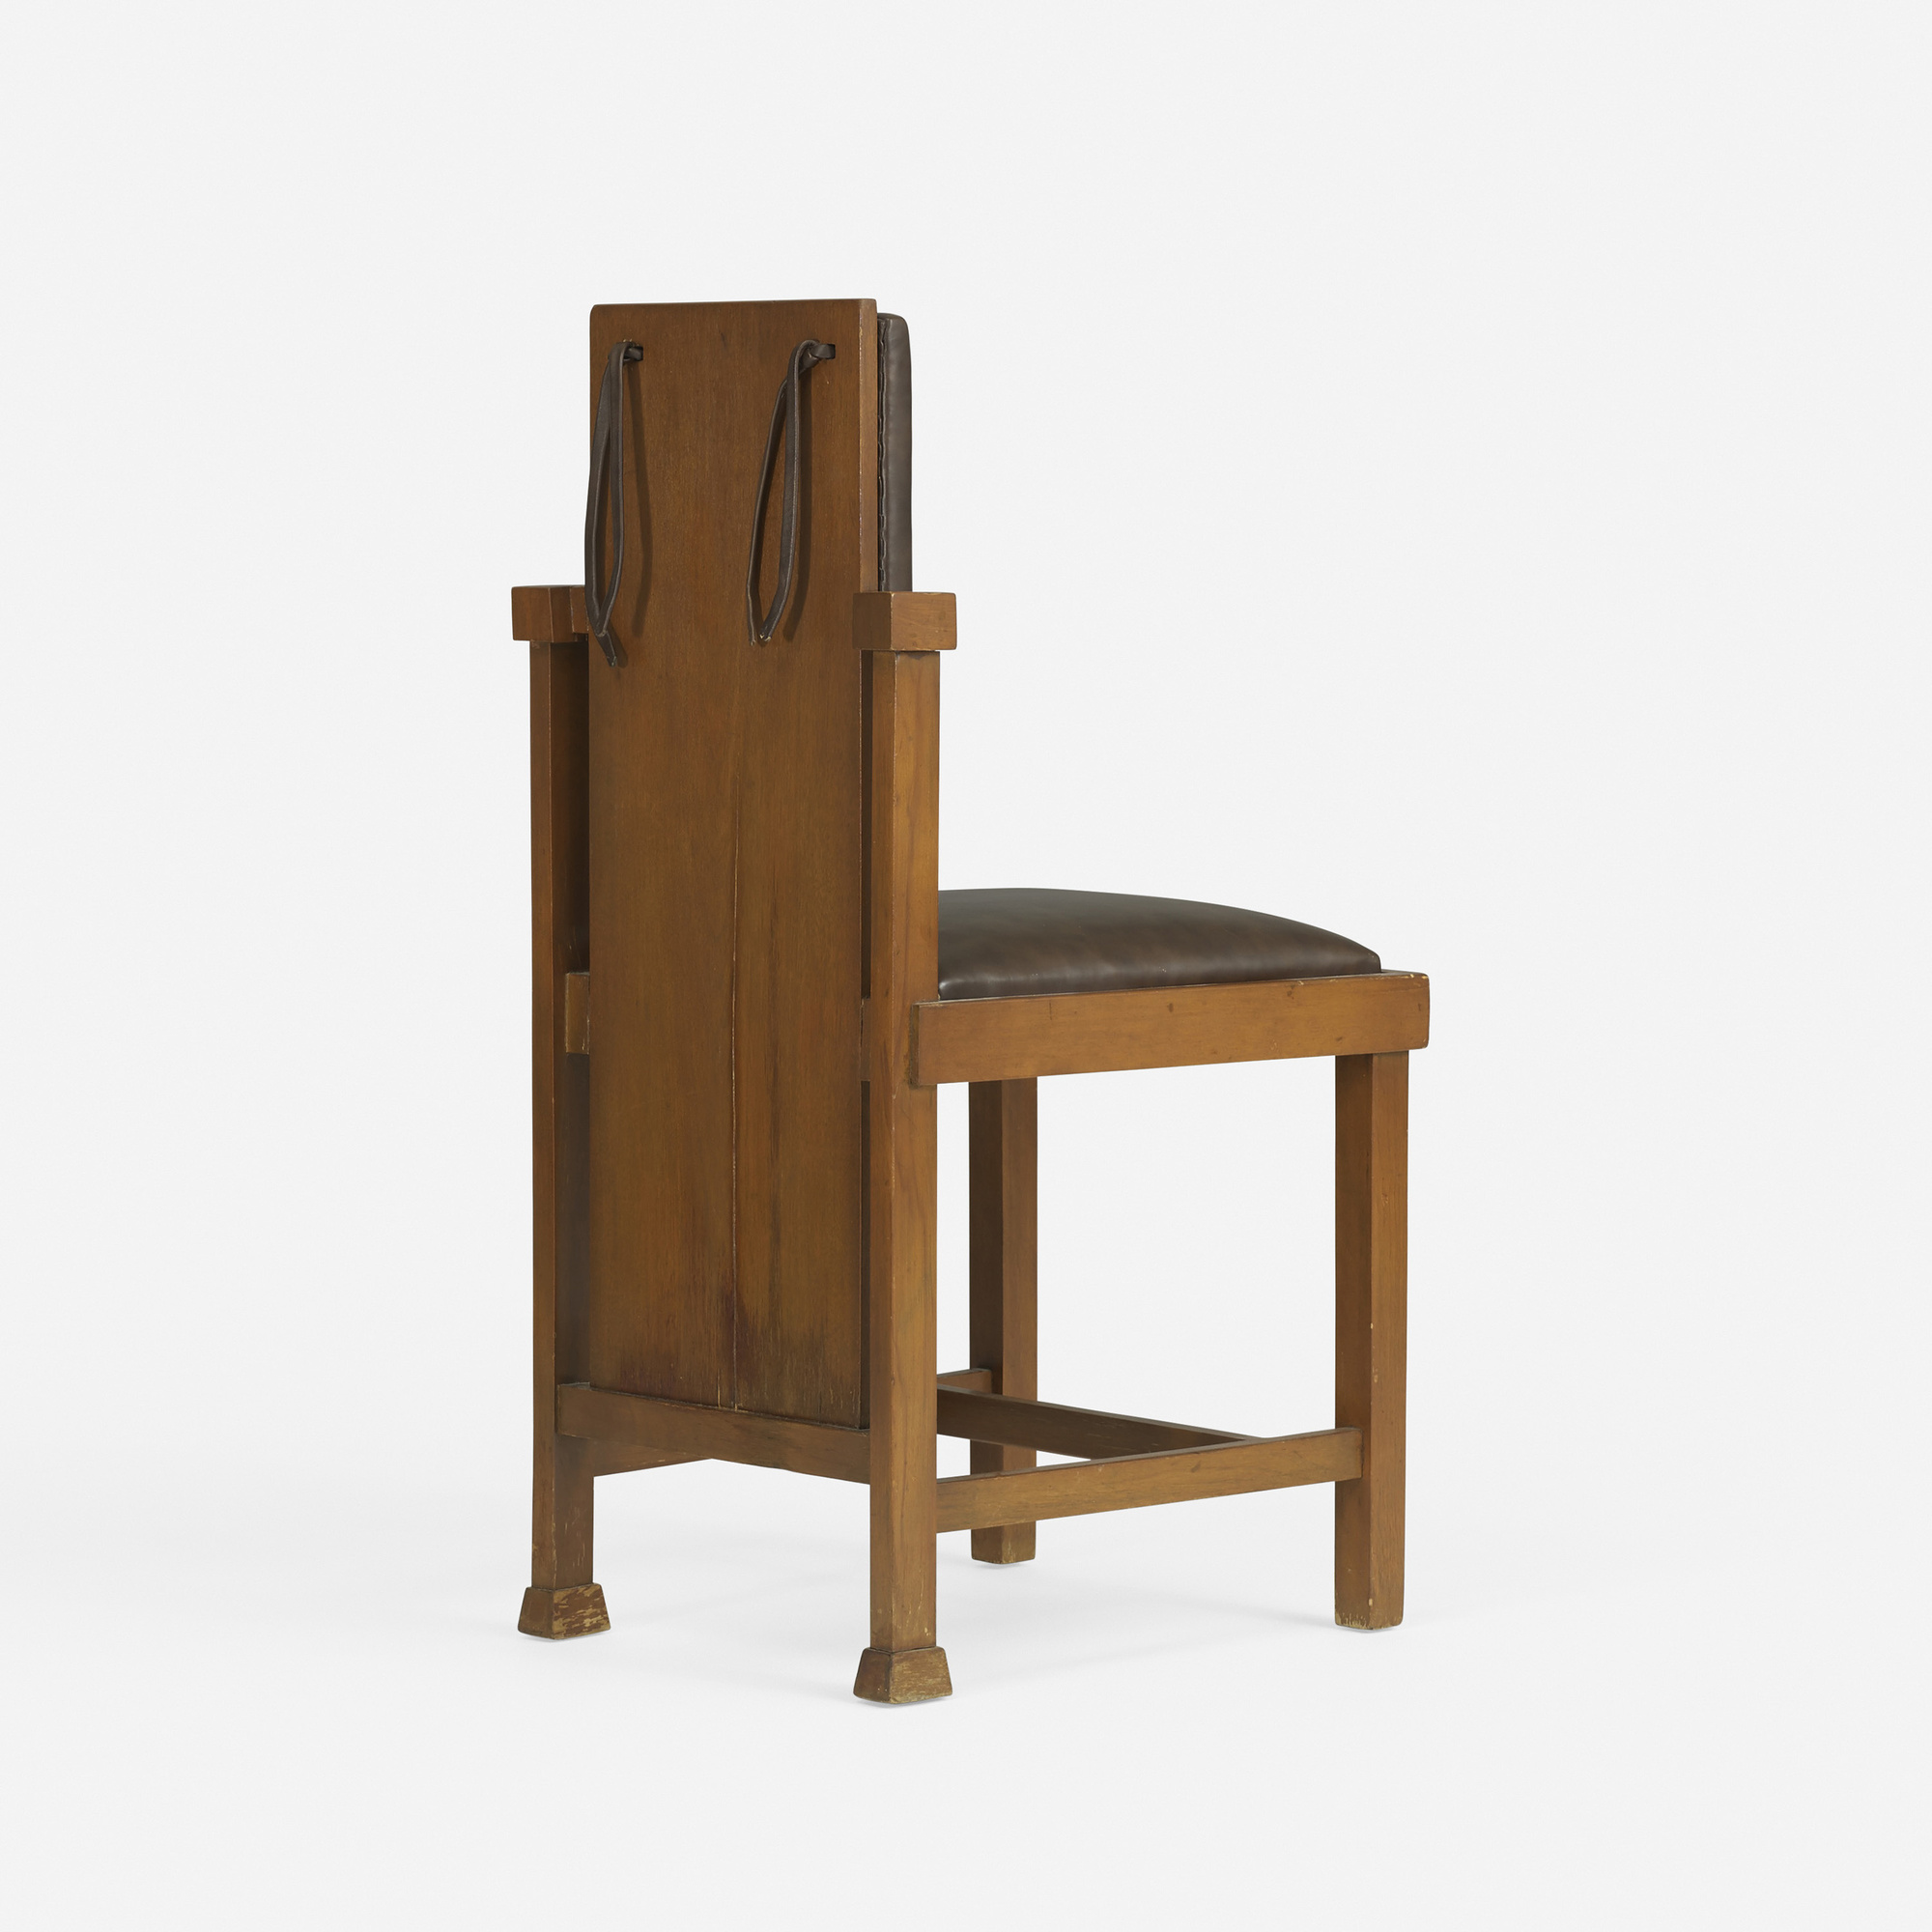 Frank Lloyd Wright Chairs 168 Frank Lloyd Wright Chair From The Avery Coonley